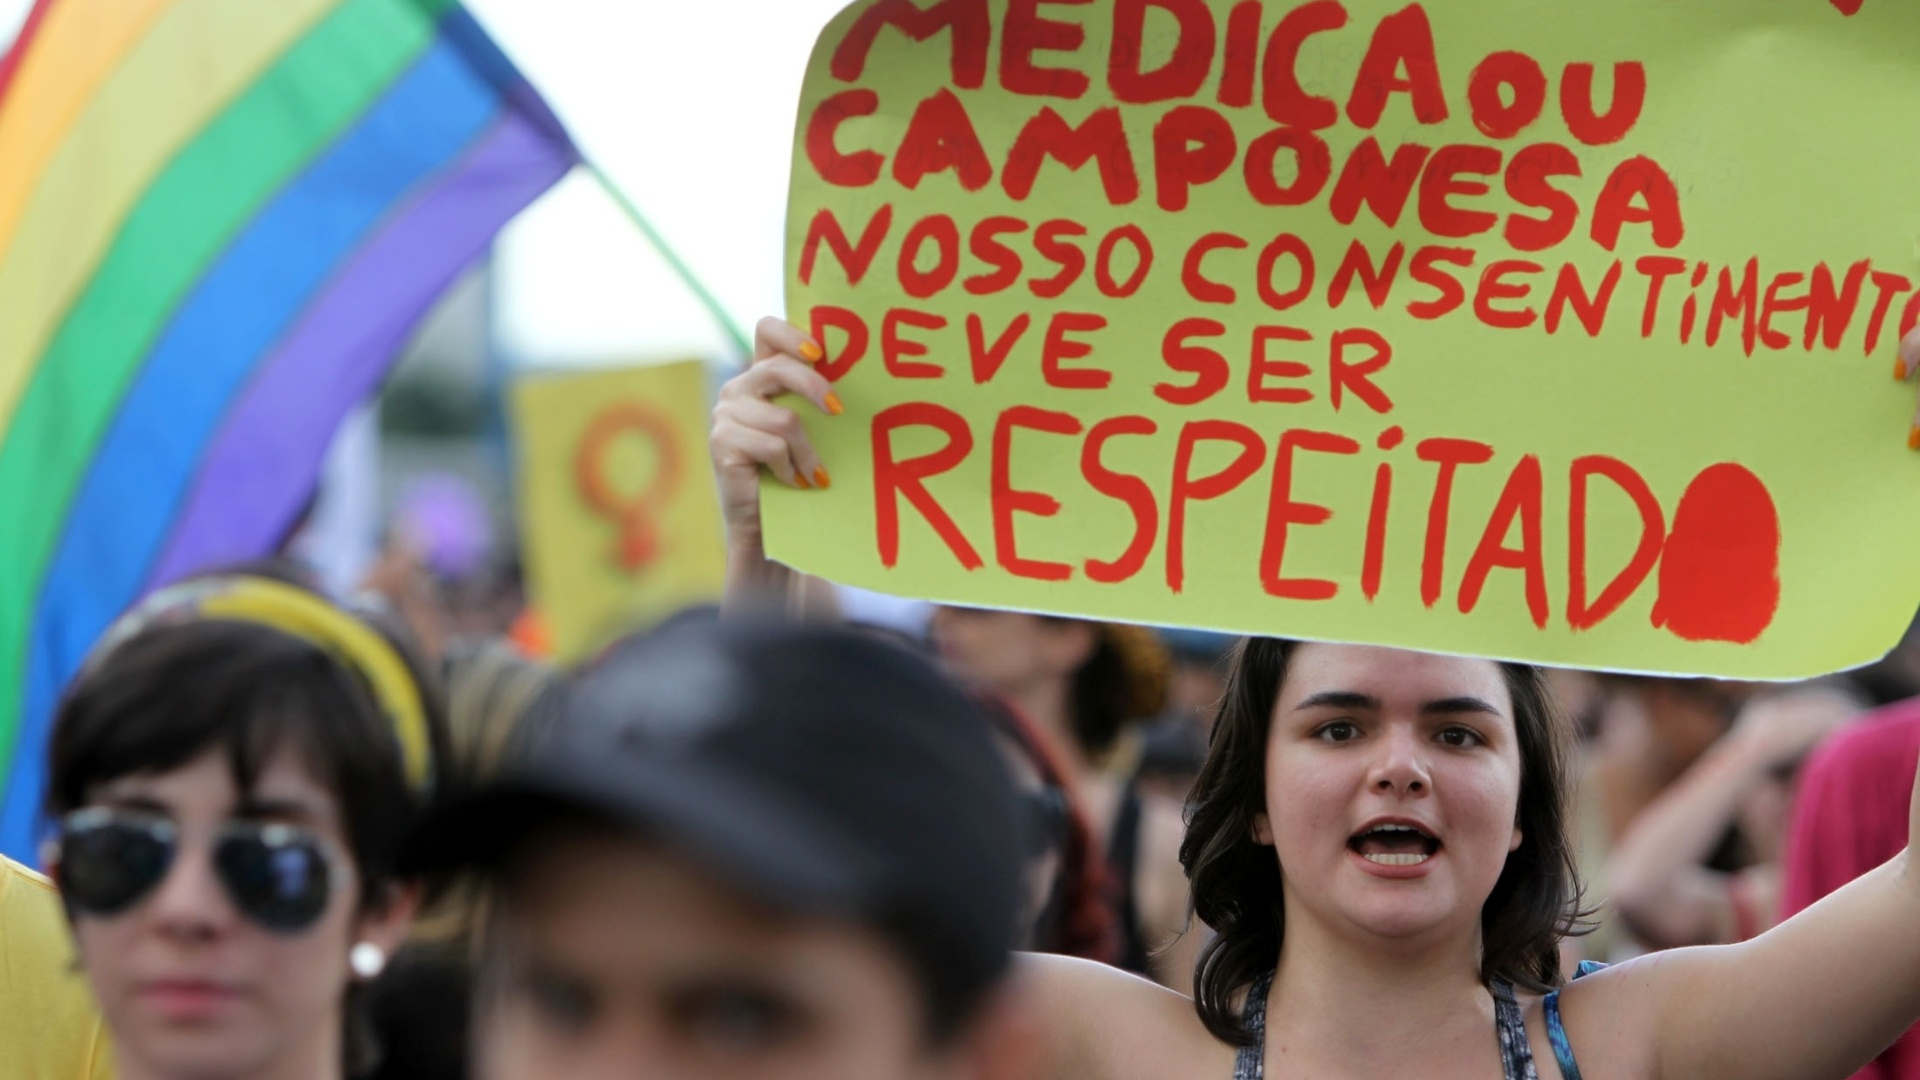  O protesto contra a violncia dirigida  mulher  o objetivo principal da Marcha das Vadias. O movimento comeou em Toronto, no Canad, no ano passado, e desde ento chegou a cidades em todo o mundo